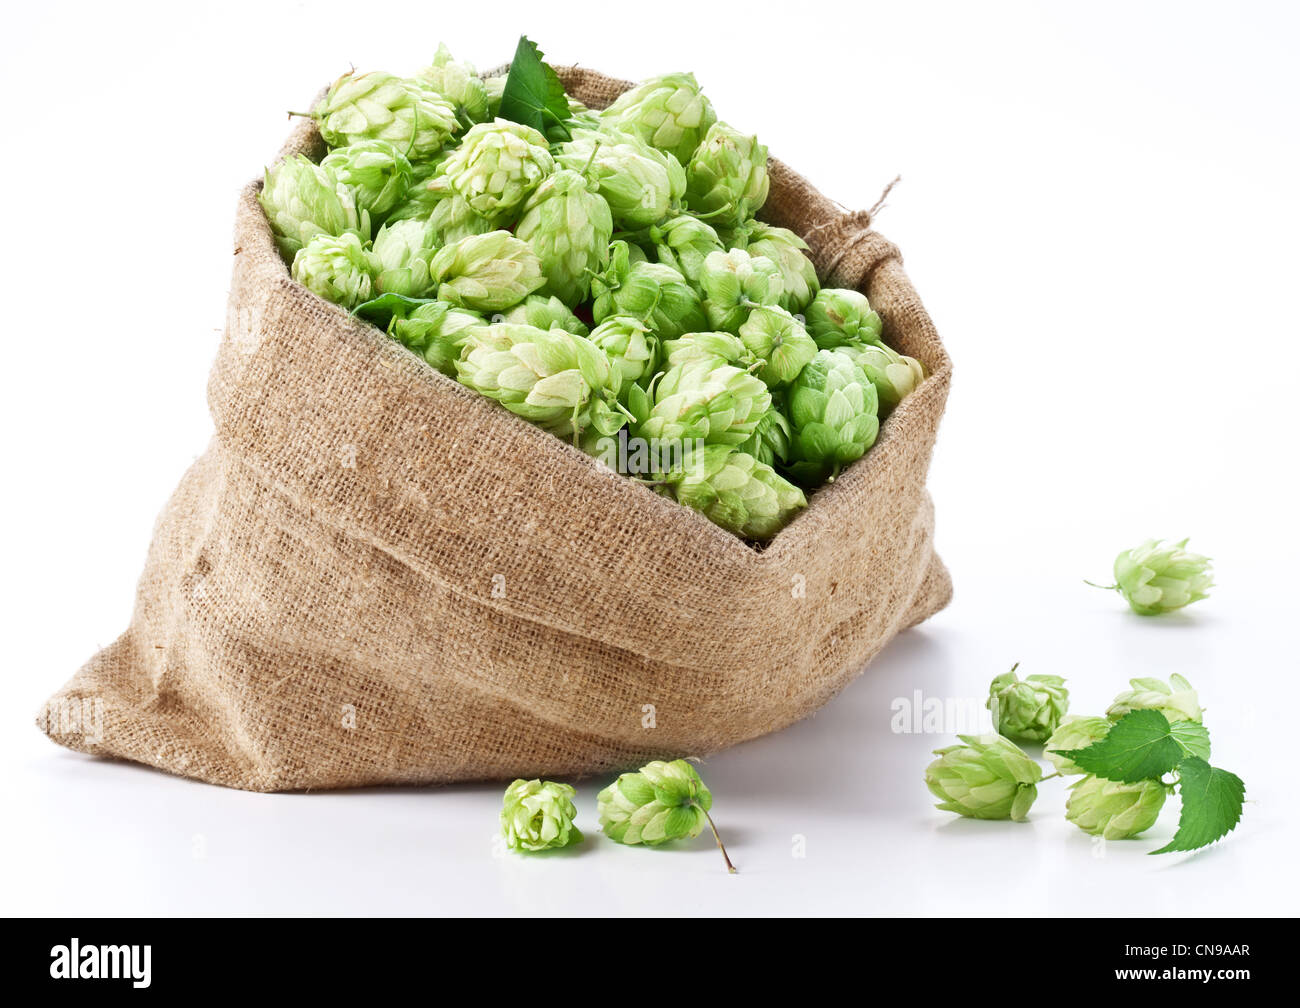 Sac de houblon sur un fond blanc. Photo Stock